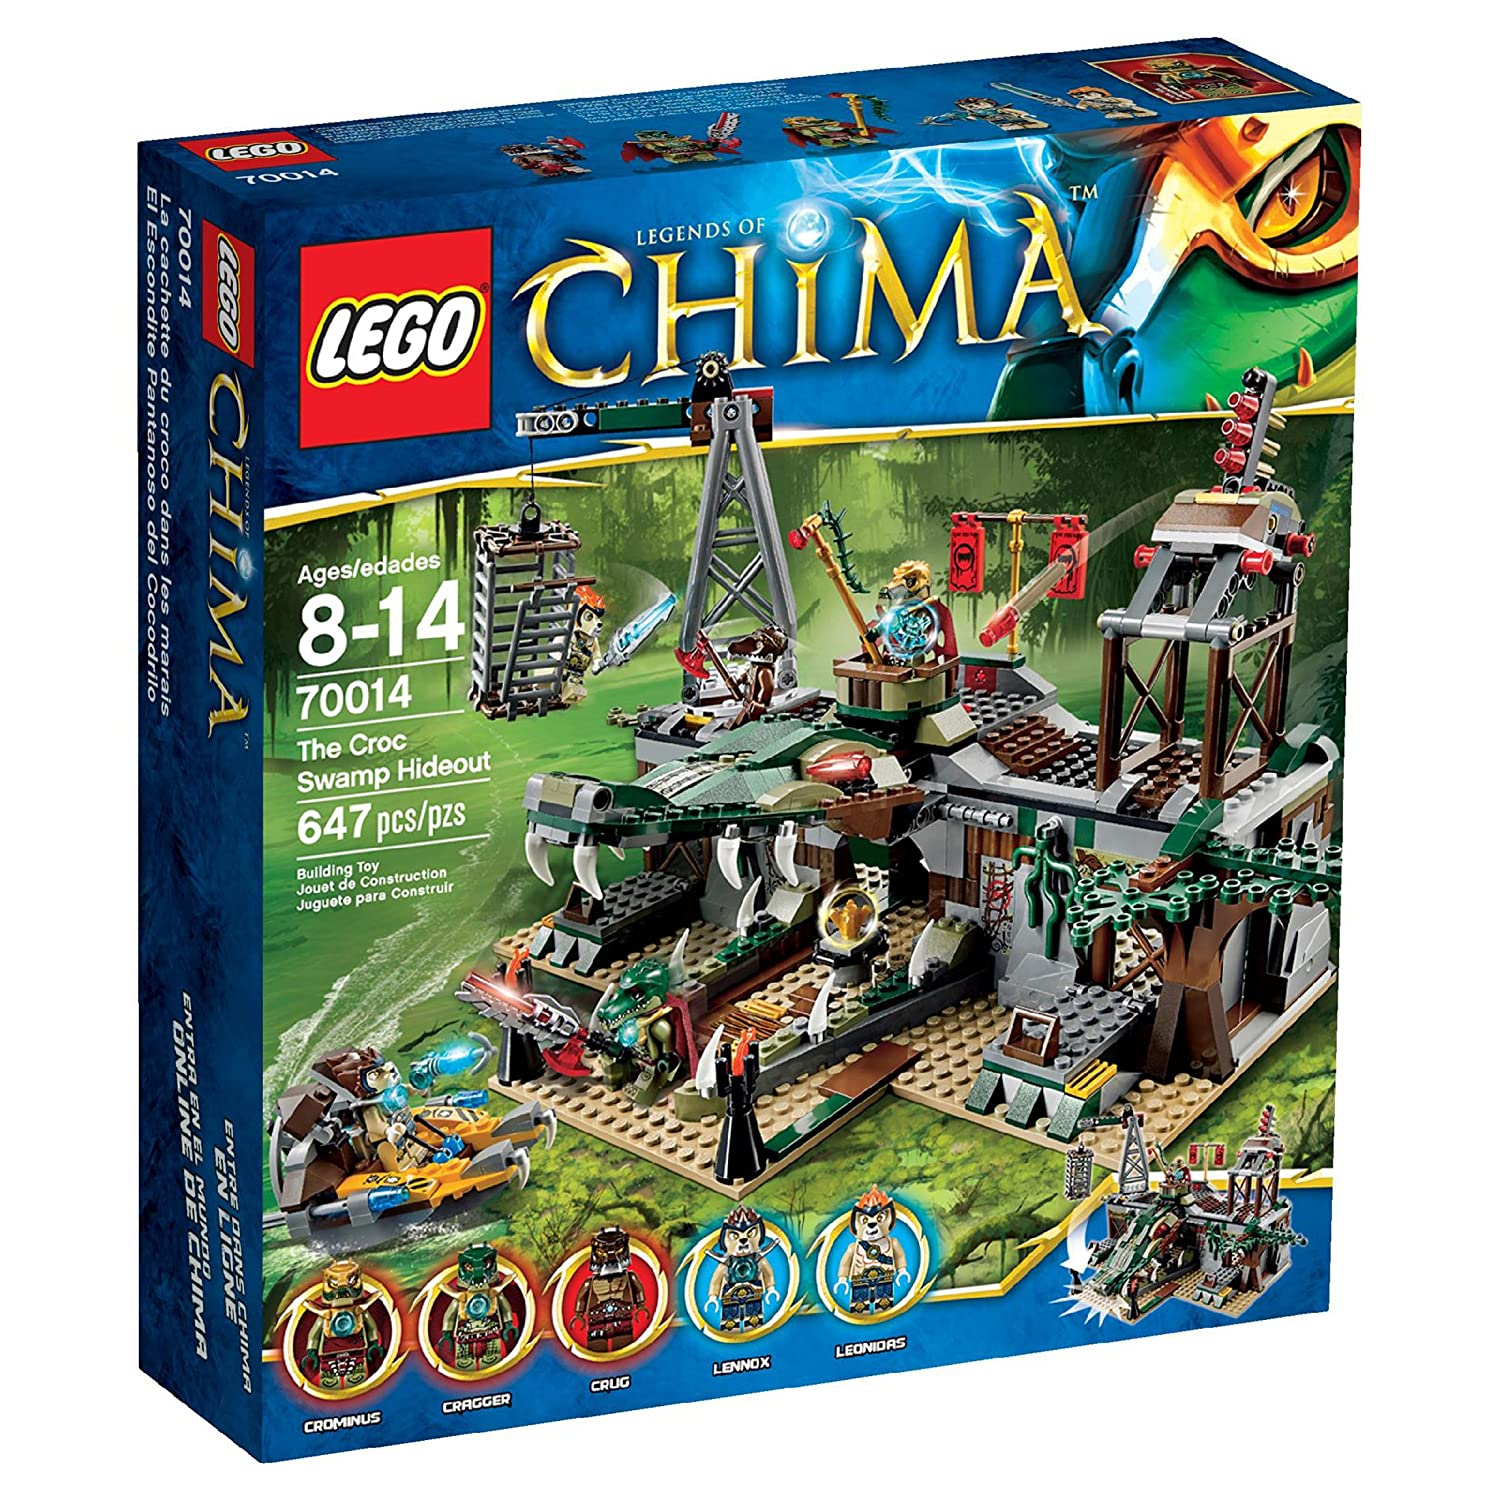 Top 9 Best LEGO Chima Sets Reviews in 2020 1